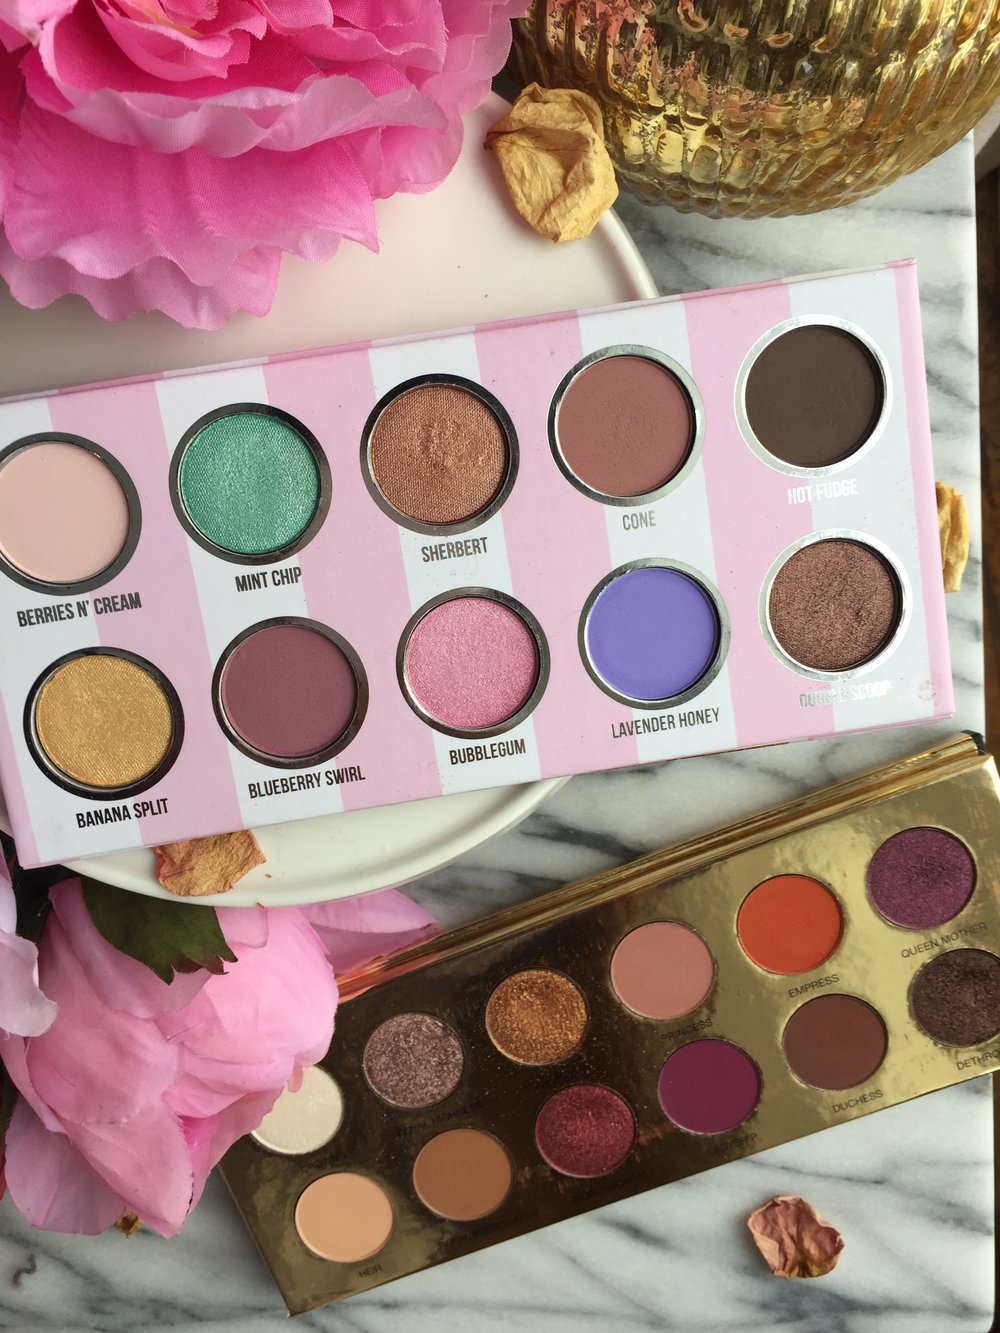 Eyescream and Queen of Hearts Palettes